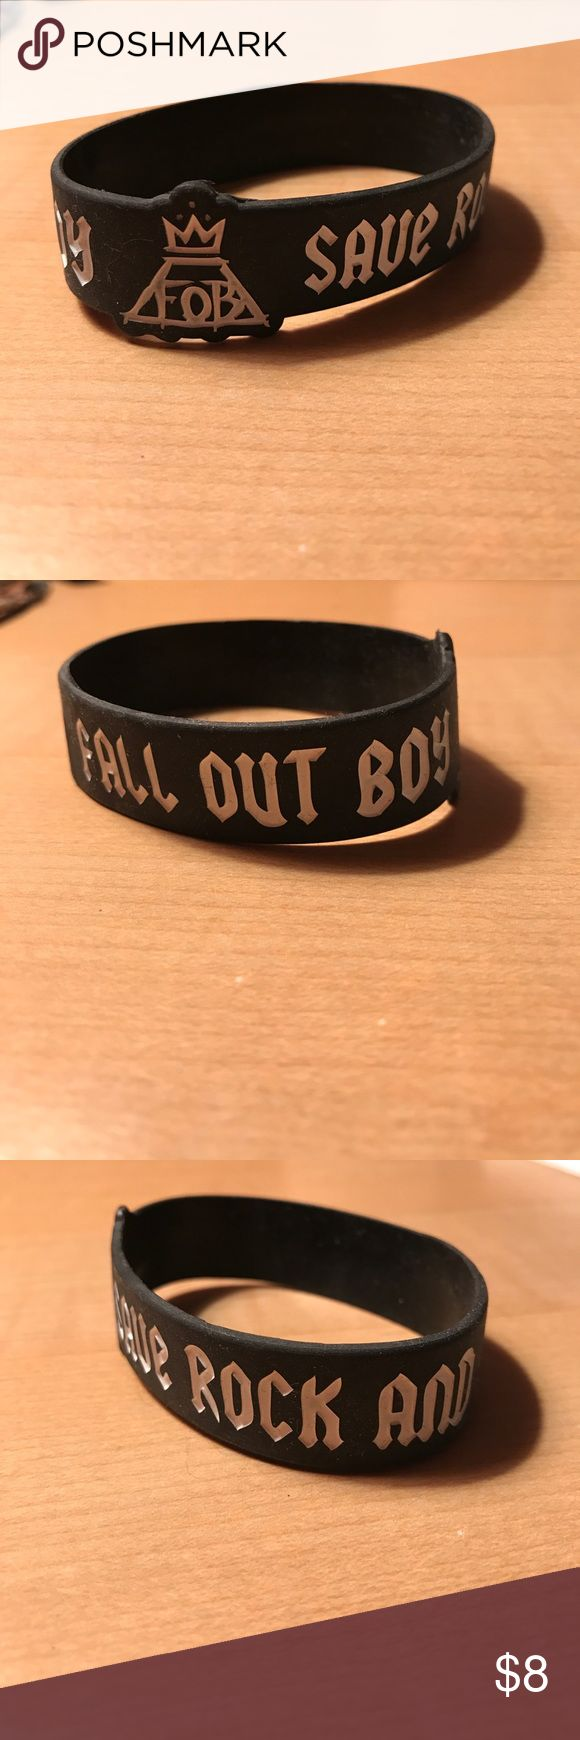 "Fall Out Boy Bracelet This was bought at a Fall Out Boy concert and is official merchandise. It has the band's symbol with ""Fall Out Boy"" on one side and ""Save Rock and Roll"" in the other. It is black with white letters. It measures 2.5"" in diameter but is stretchy enough to accommodate a larger wrist. Jewelry Bracelets"